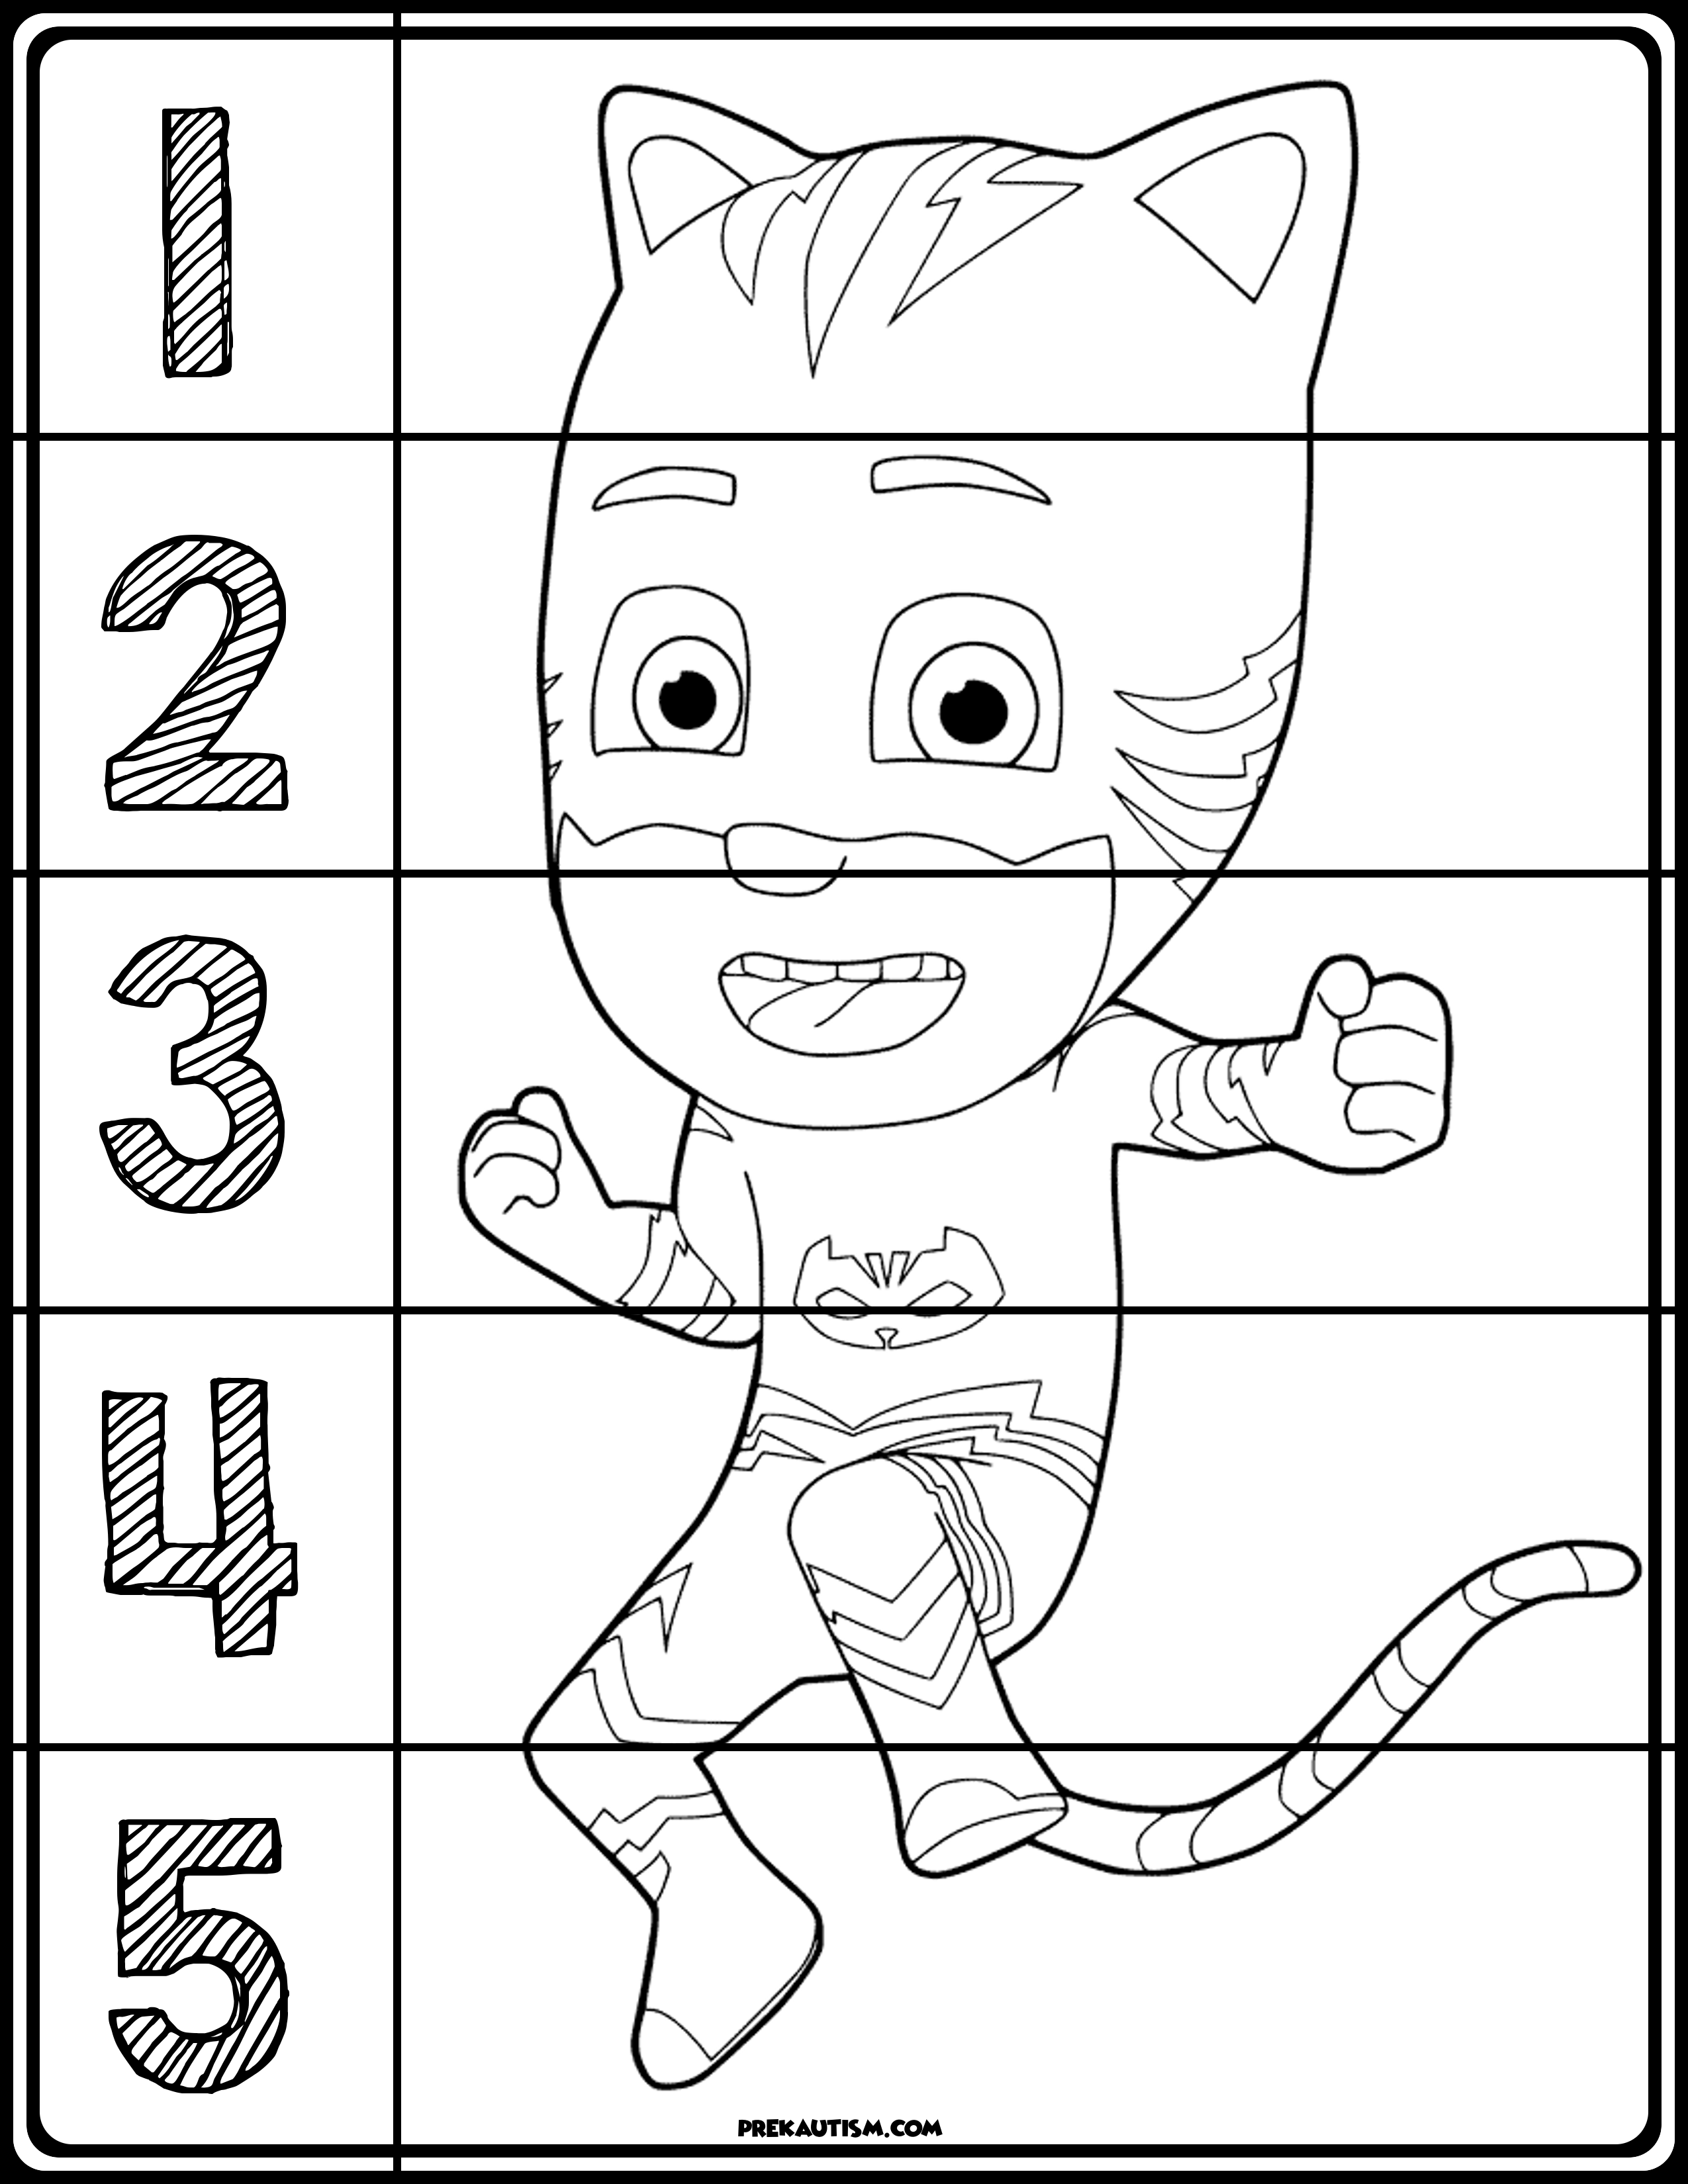 Pj Masks Coloring Number Puzzles